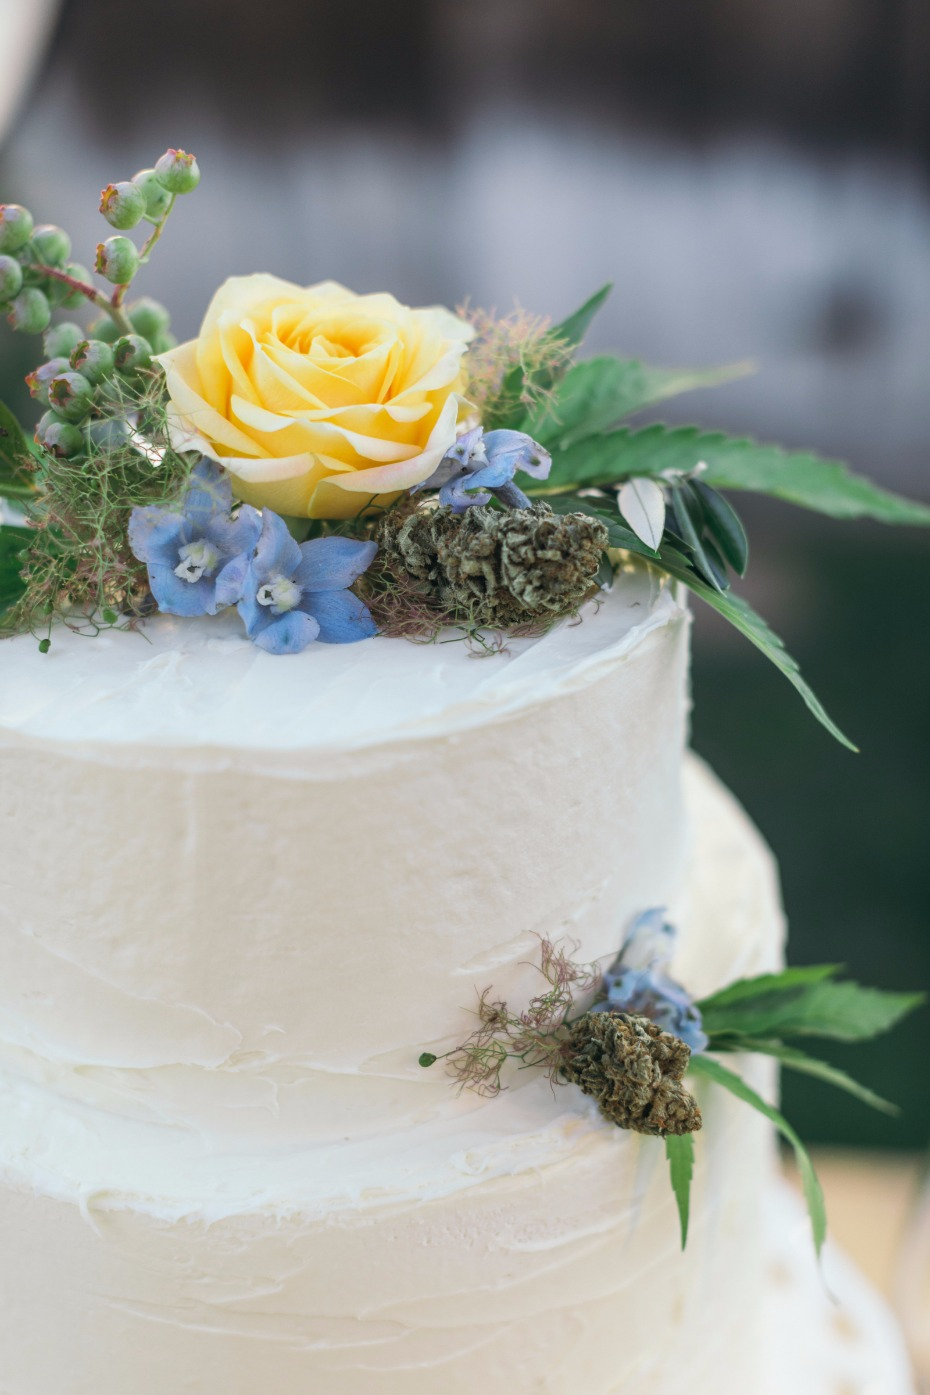 9 Classy Ways To Infuse Cannabis Into Your Wedding